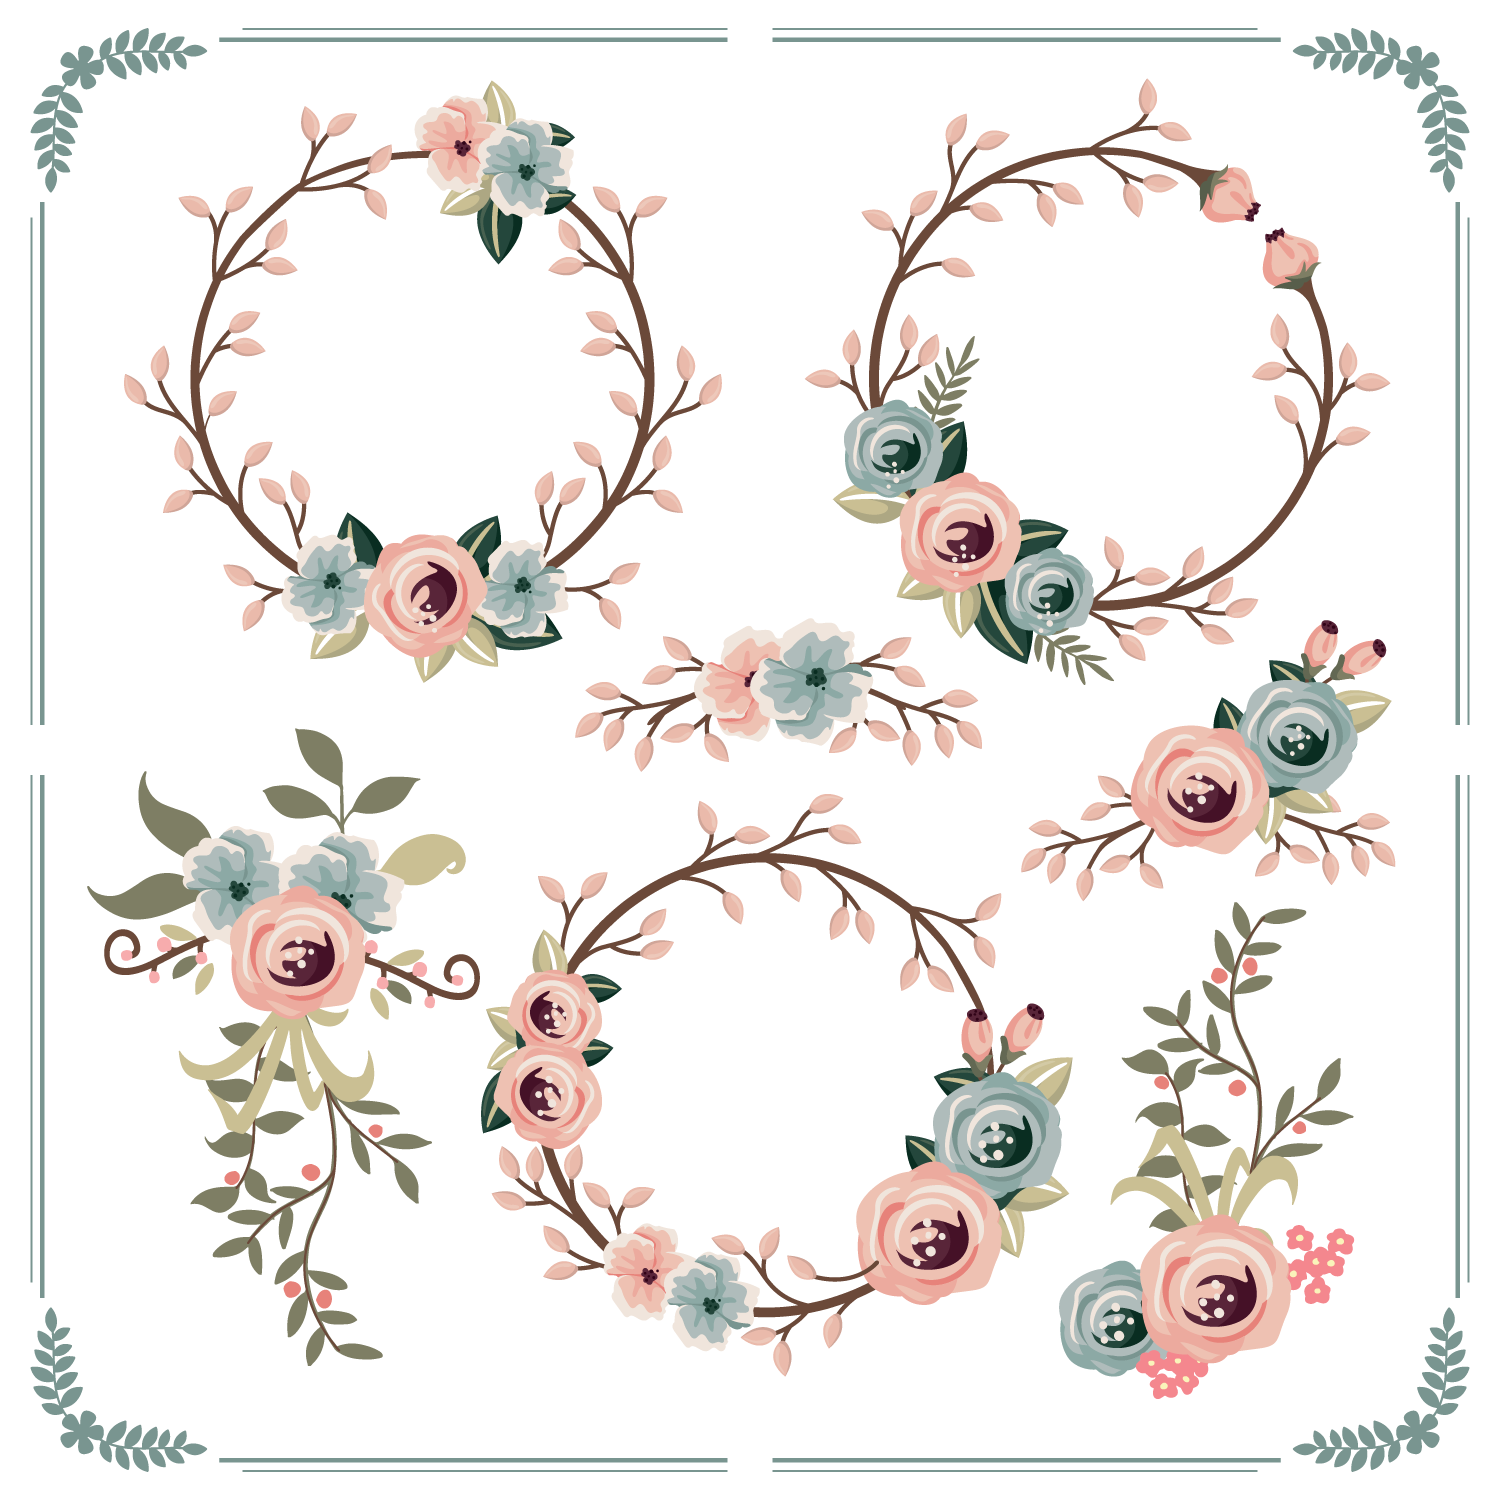 Floral Wreath Free Vector Art 12337 Free Downloads